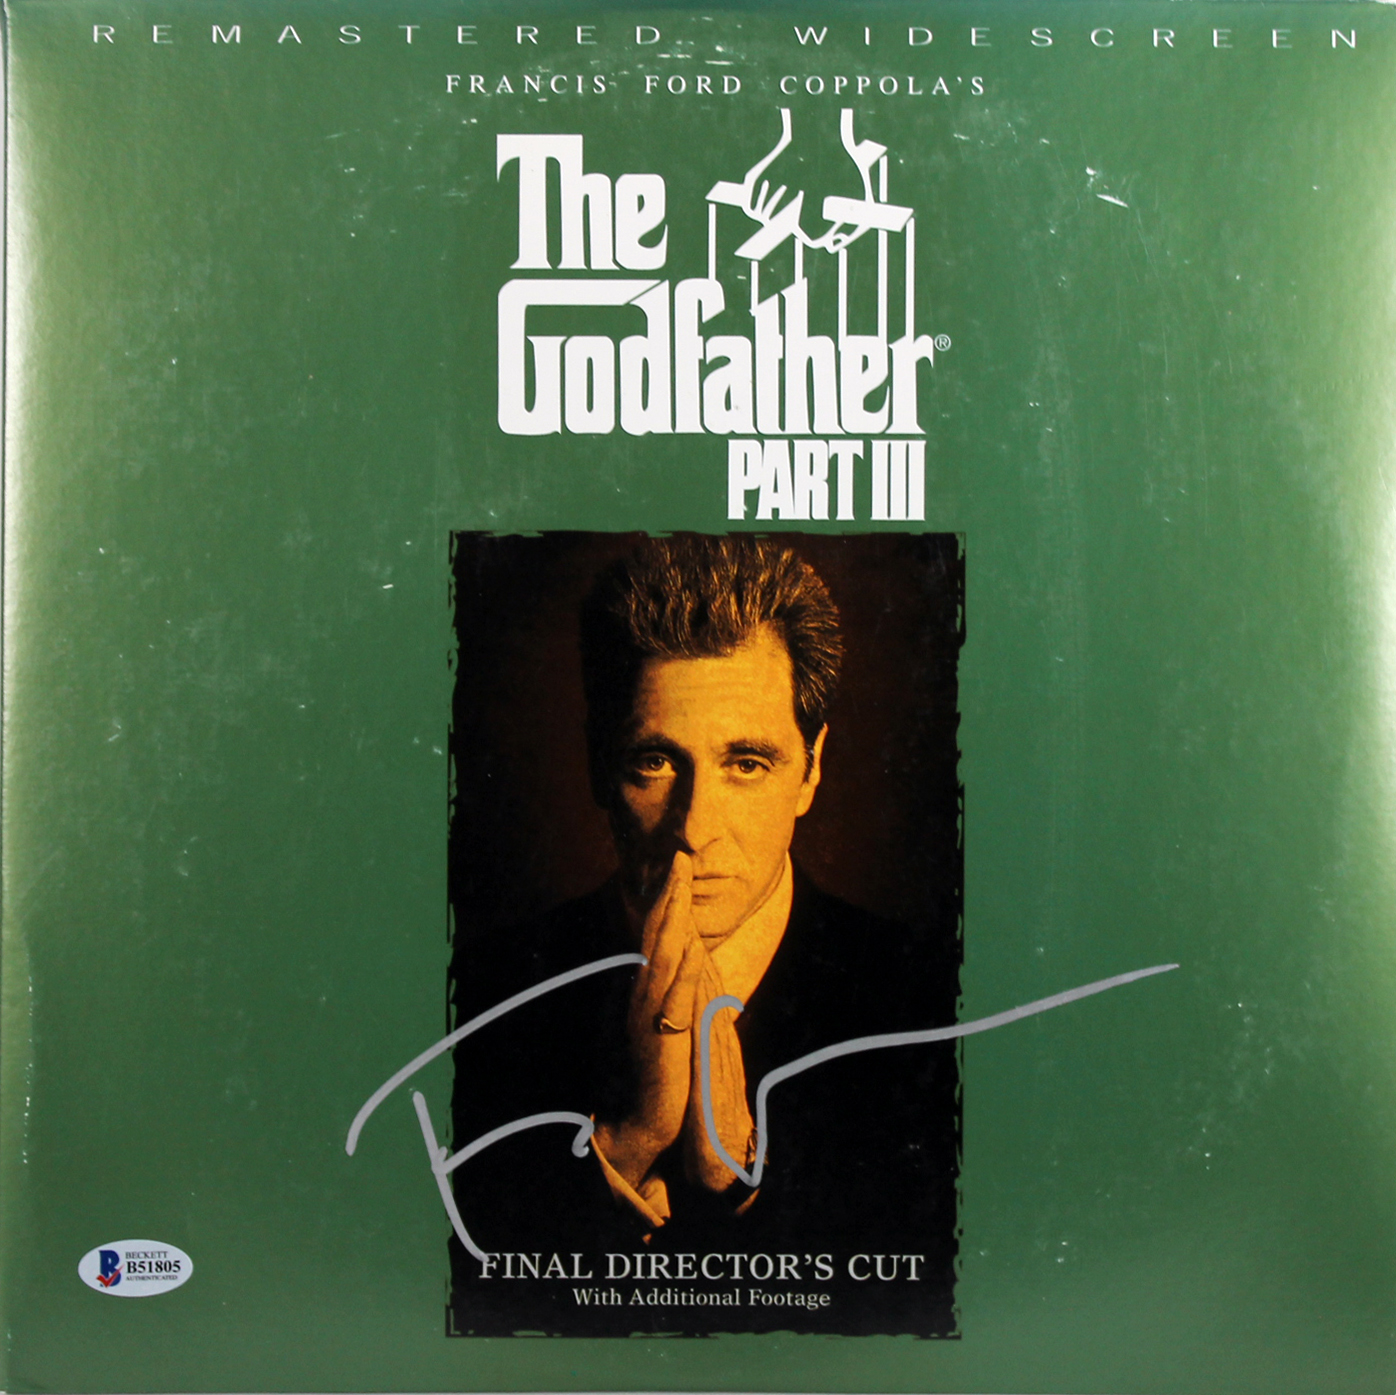 Francis Ford Coppola The Godfather III Authentic Signed Laser Disc BAS #B51805